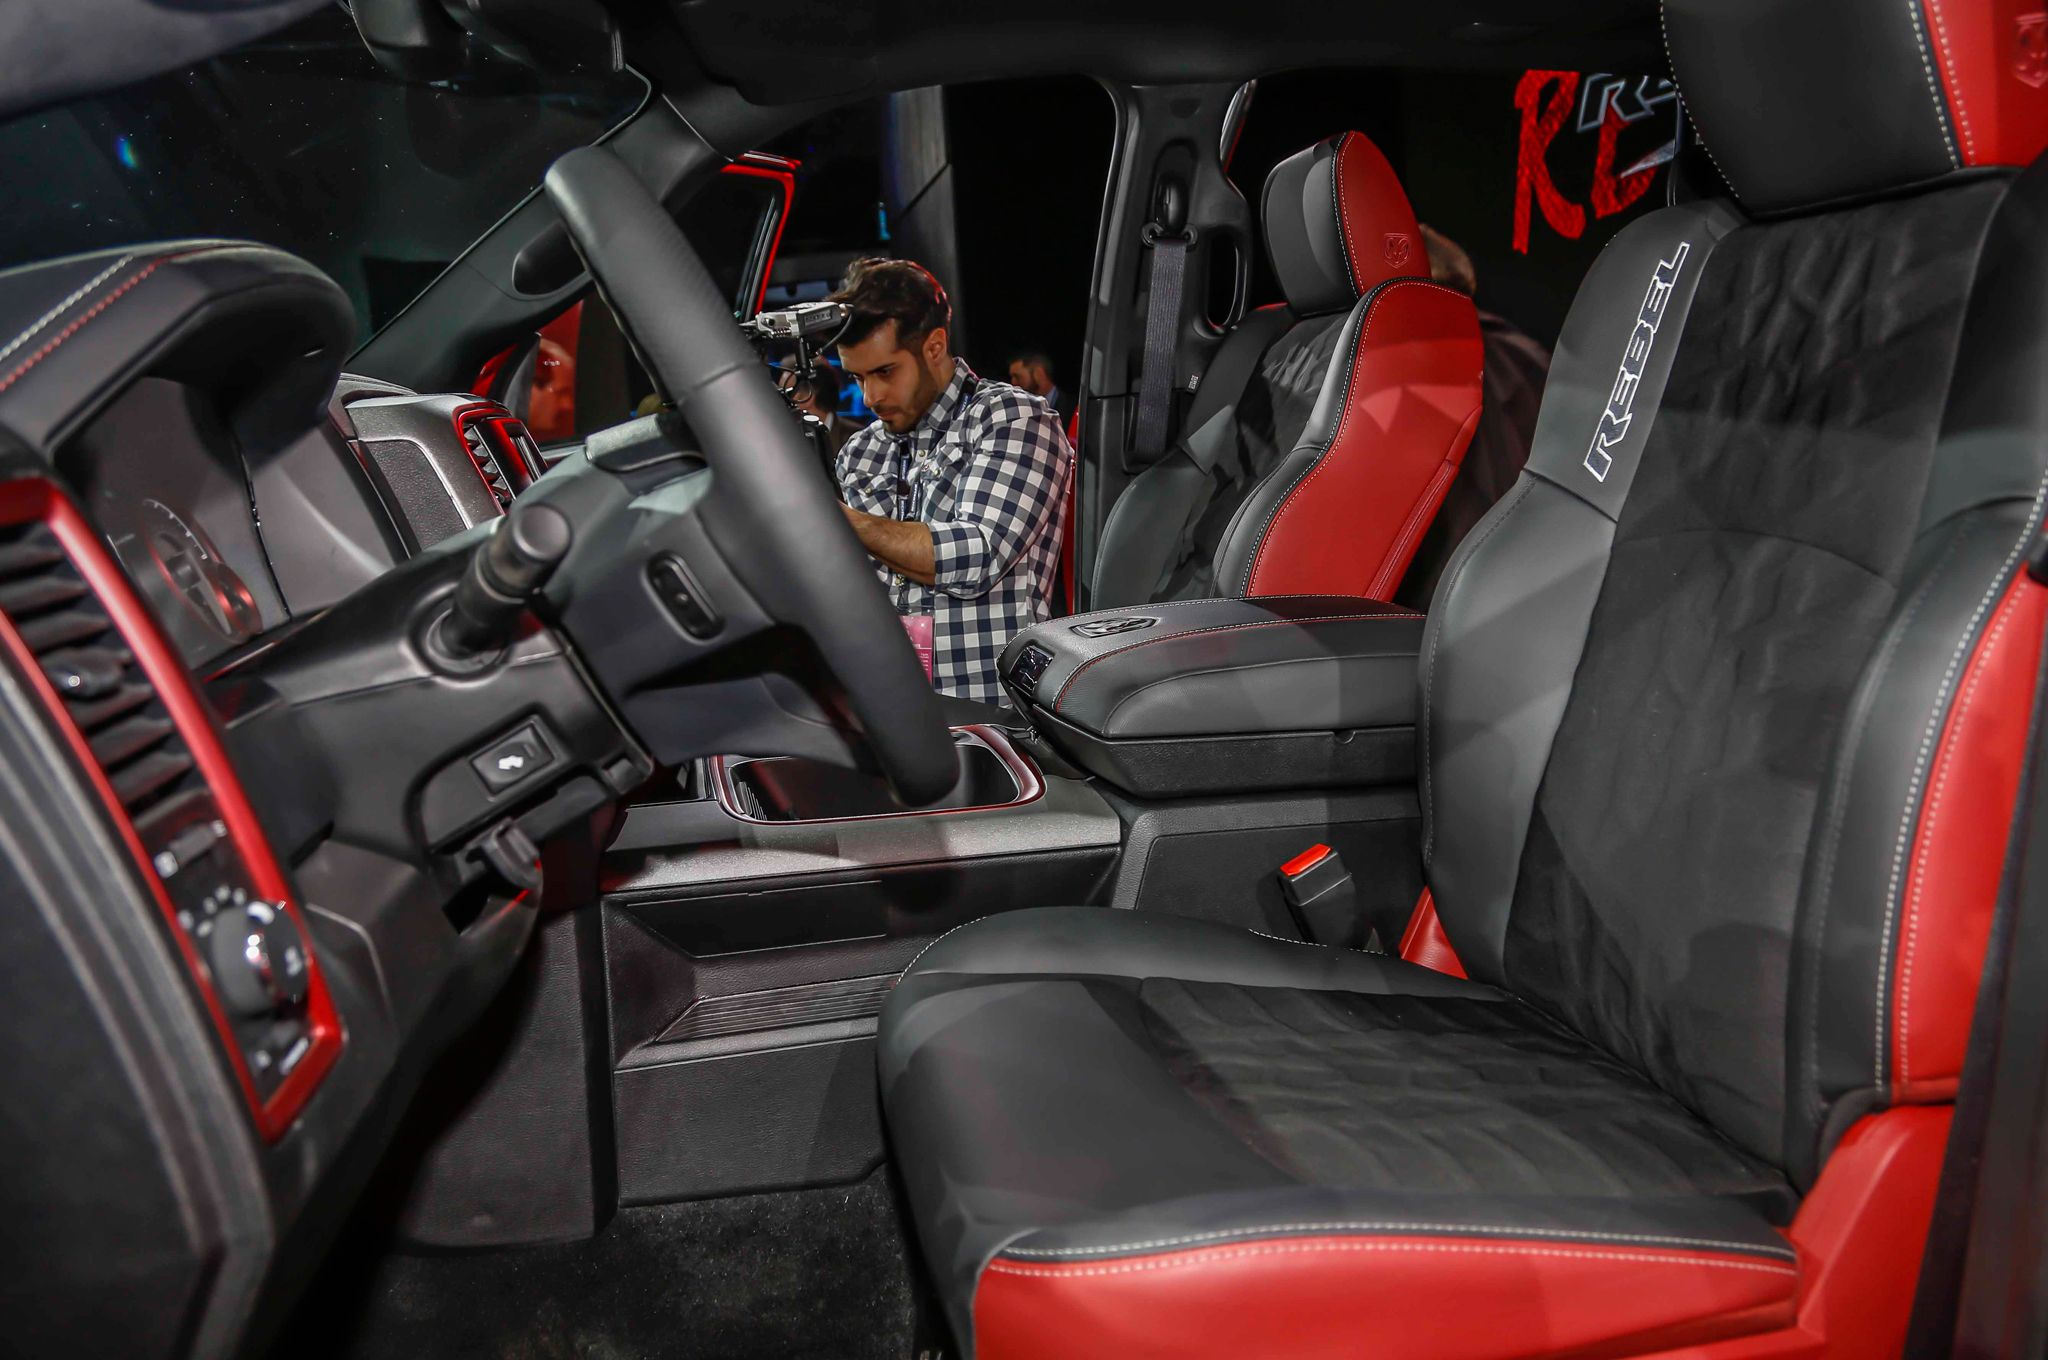 2015 Ram 1500 Rebel Interior Seats (2048×1360)